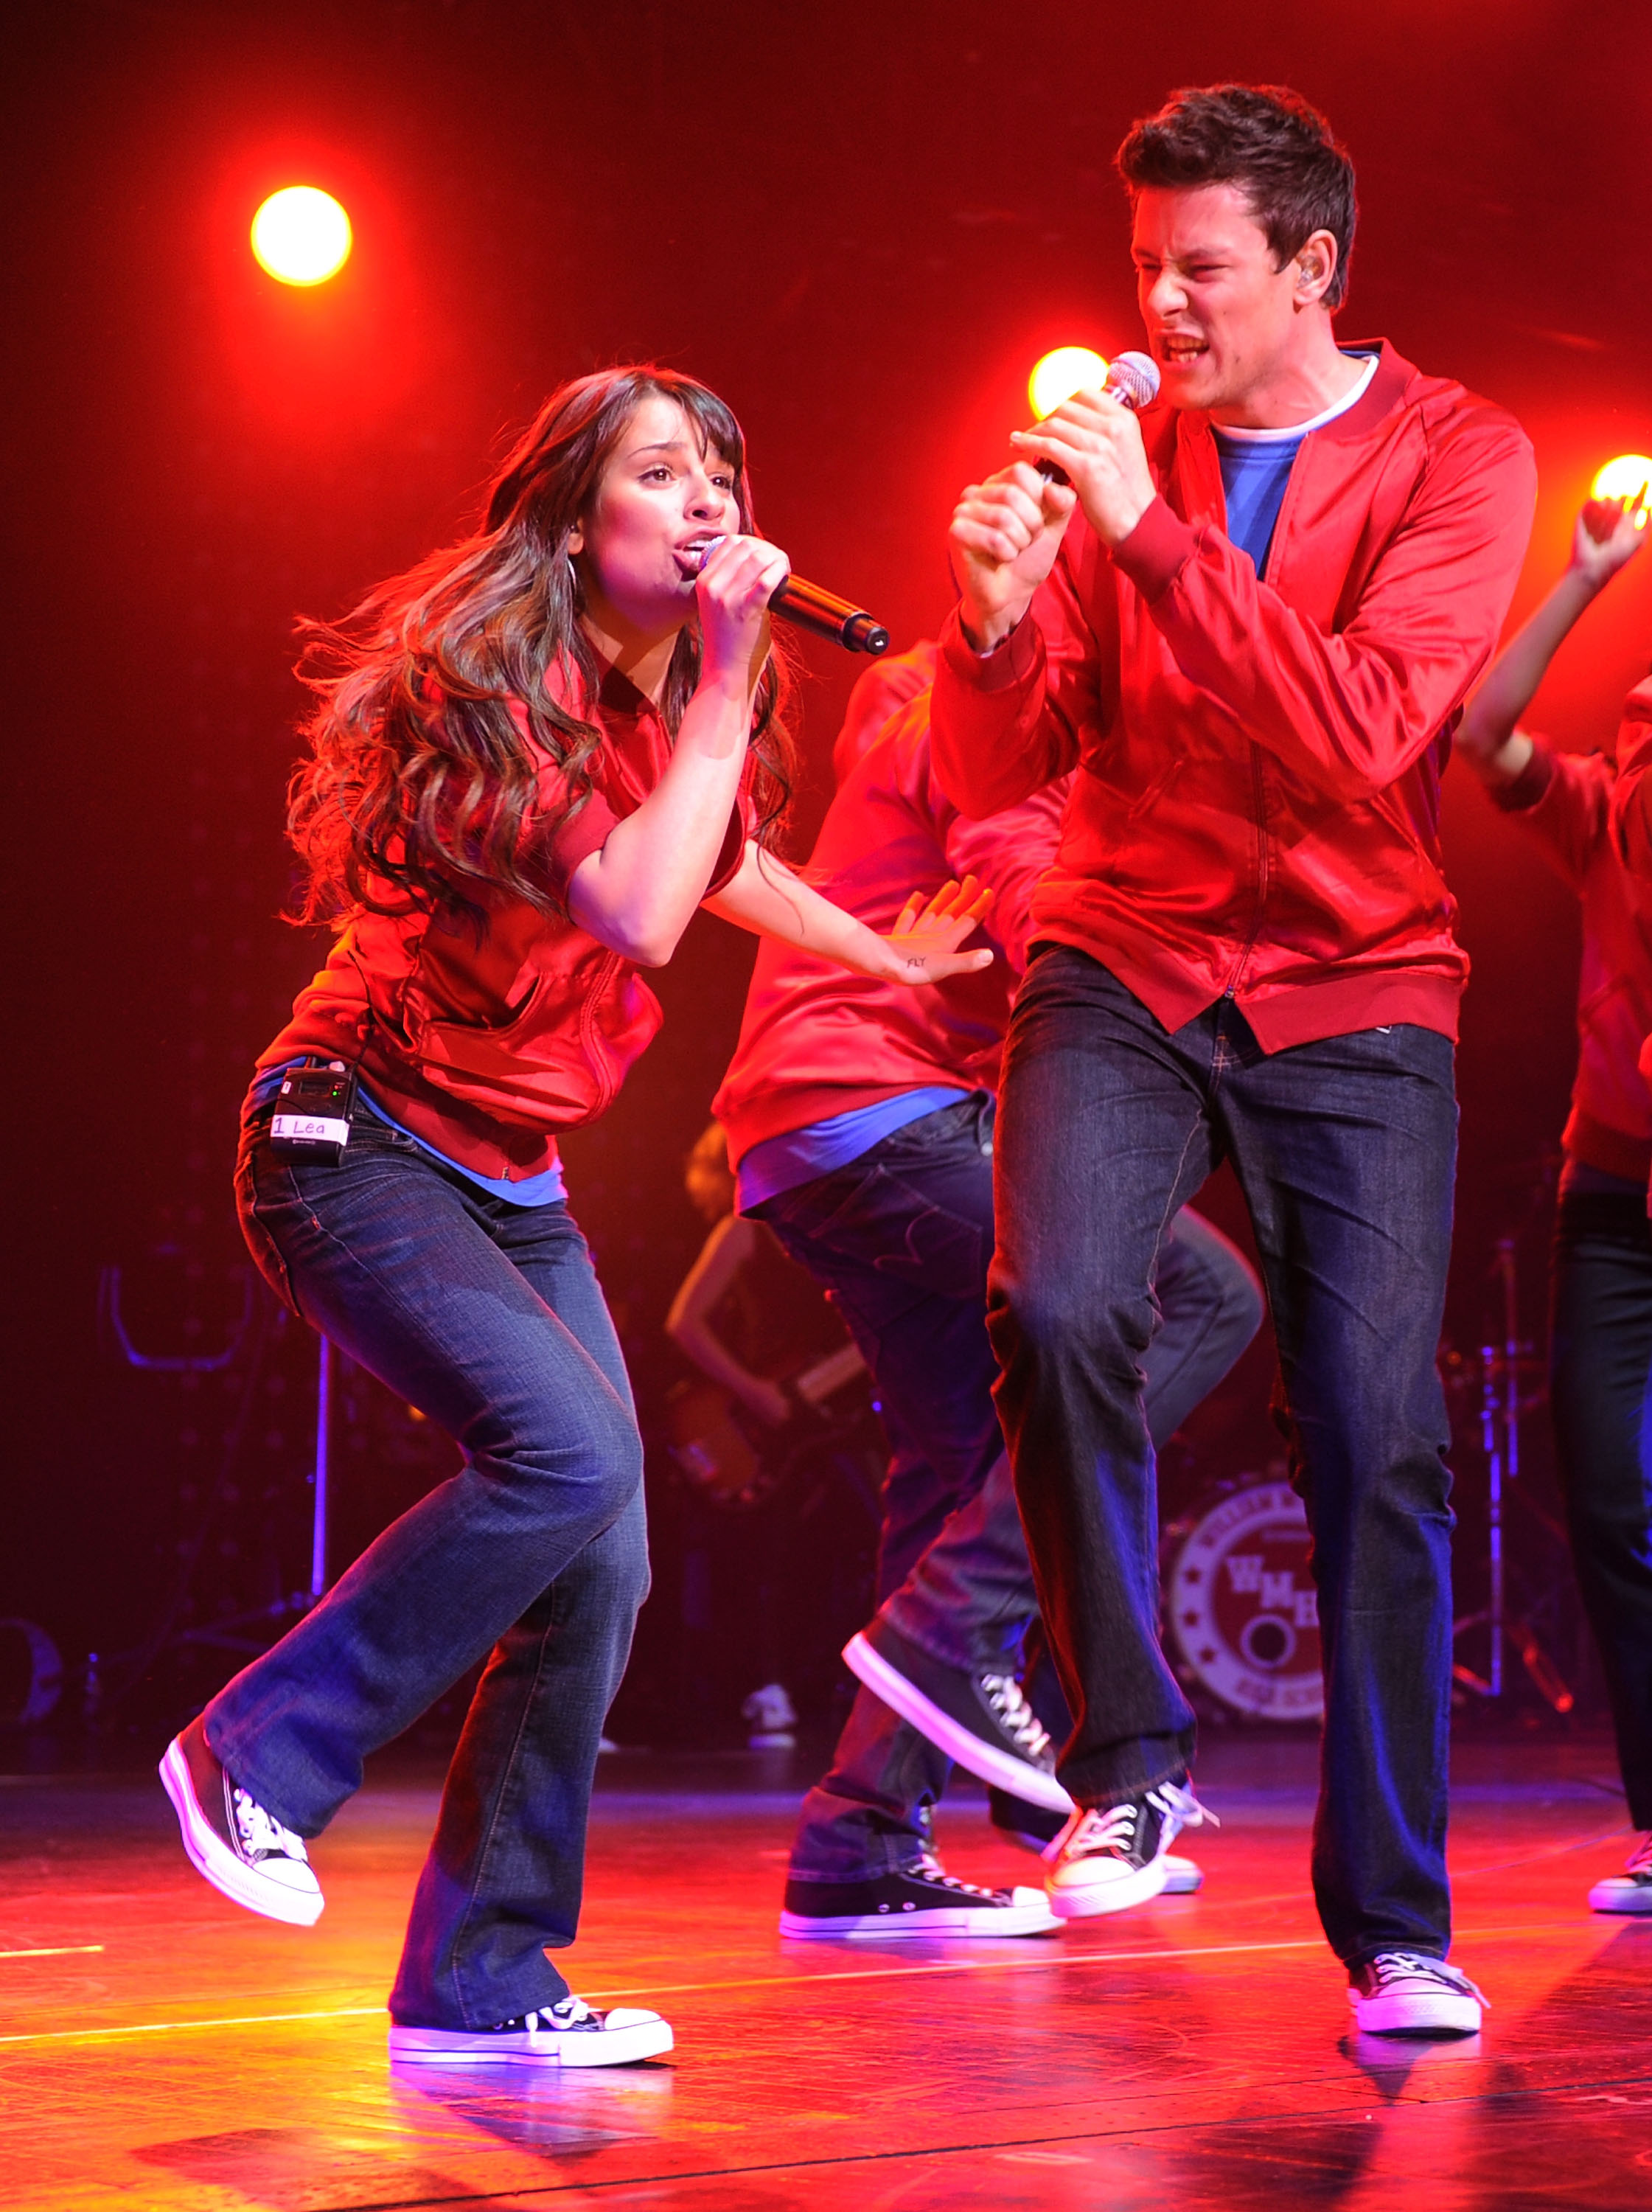 Lea Michele and Cory Monteith from the cast of Glee perform at Radio City Music Hall on May 28, 2010 in New York City.